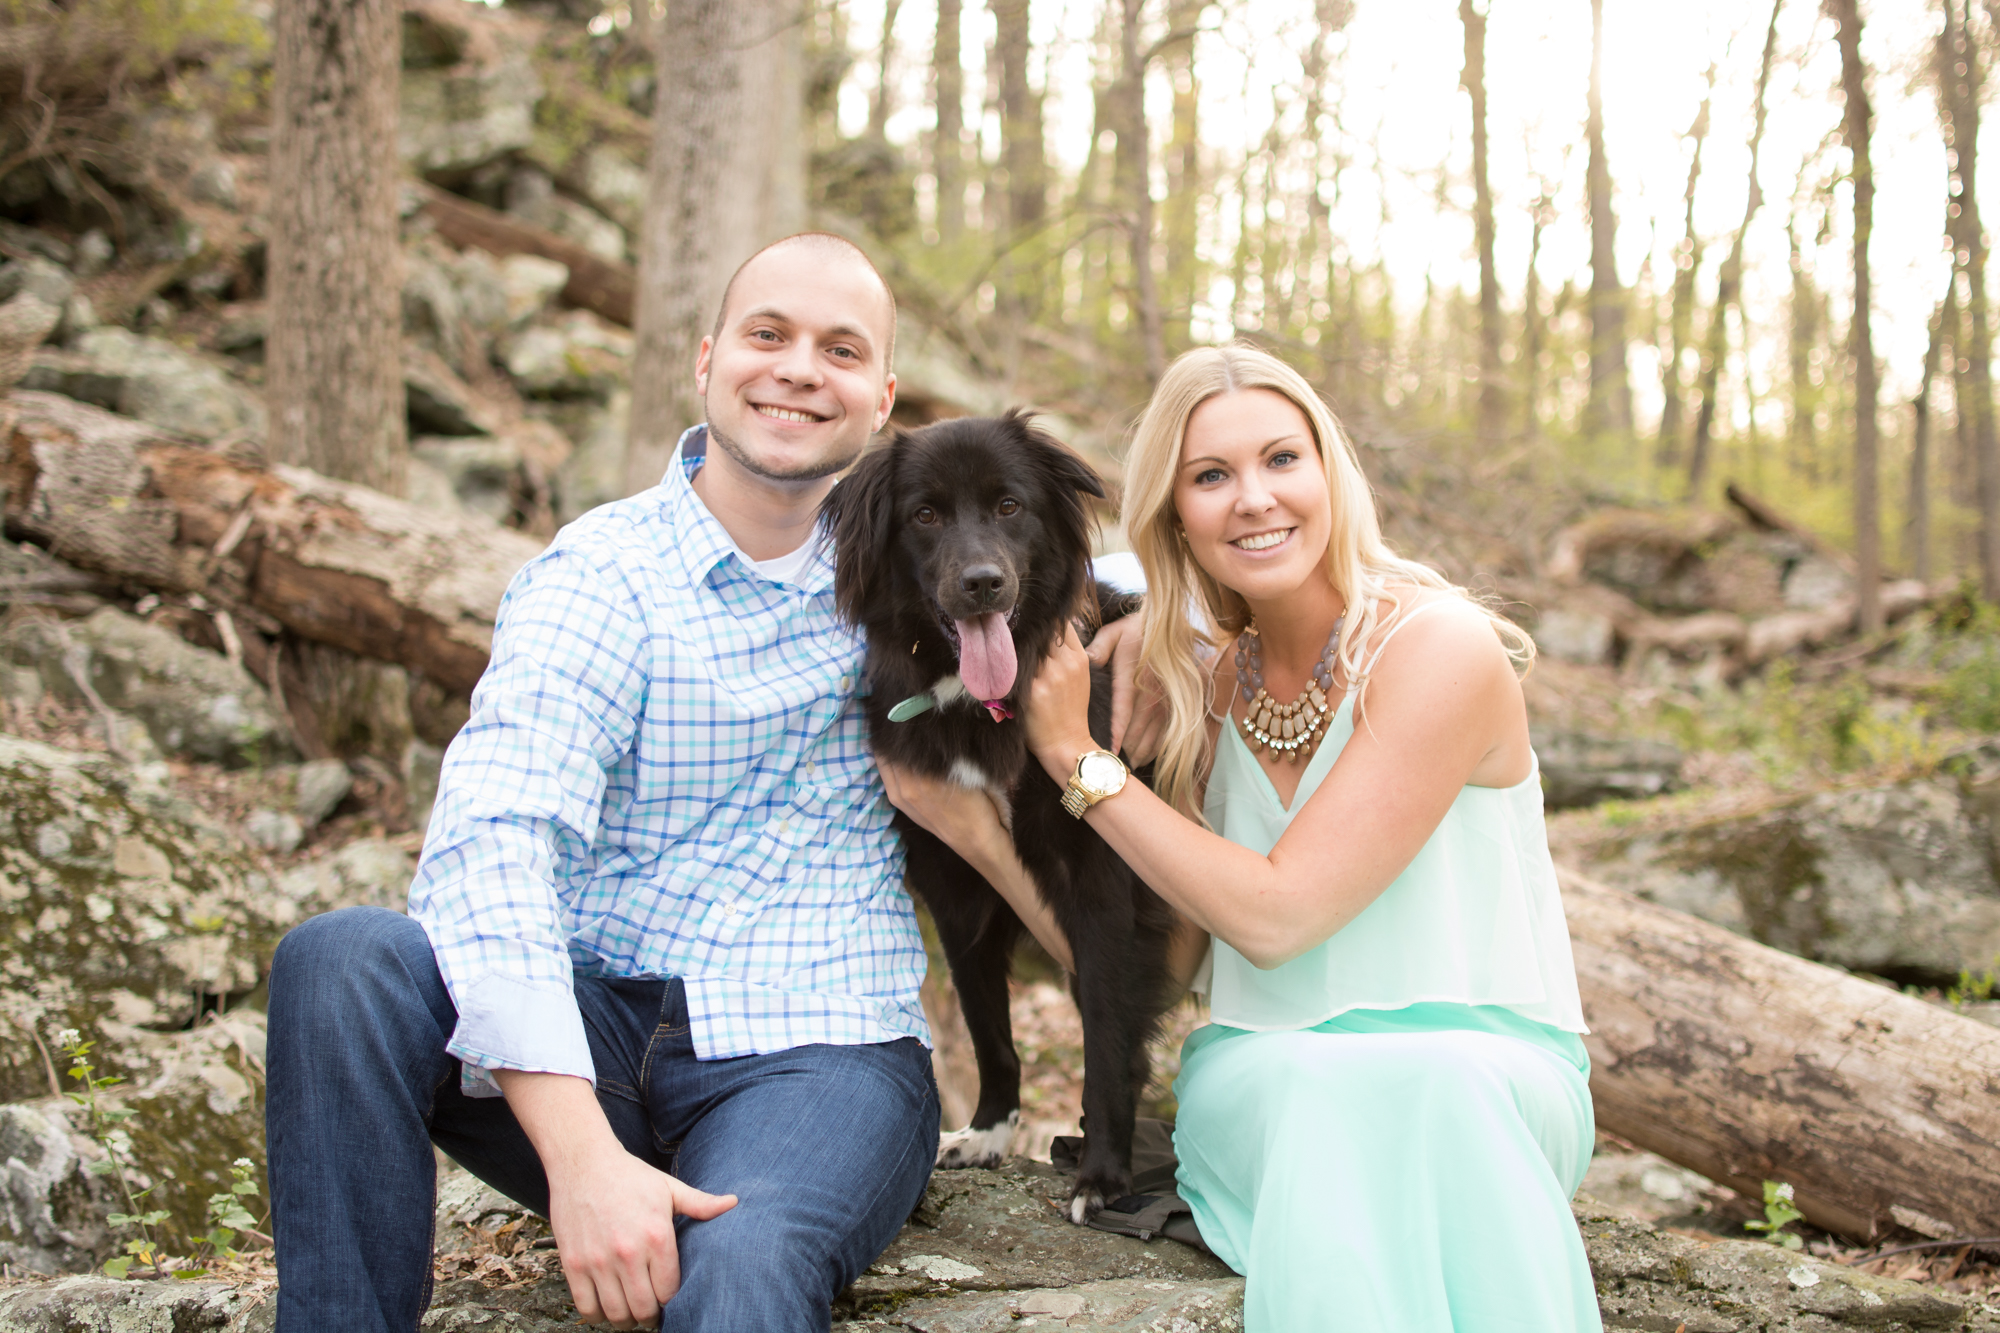 cunningham falls engagement session photo couple with dog